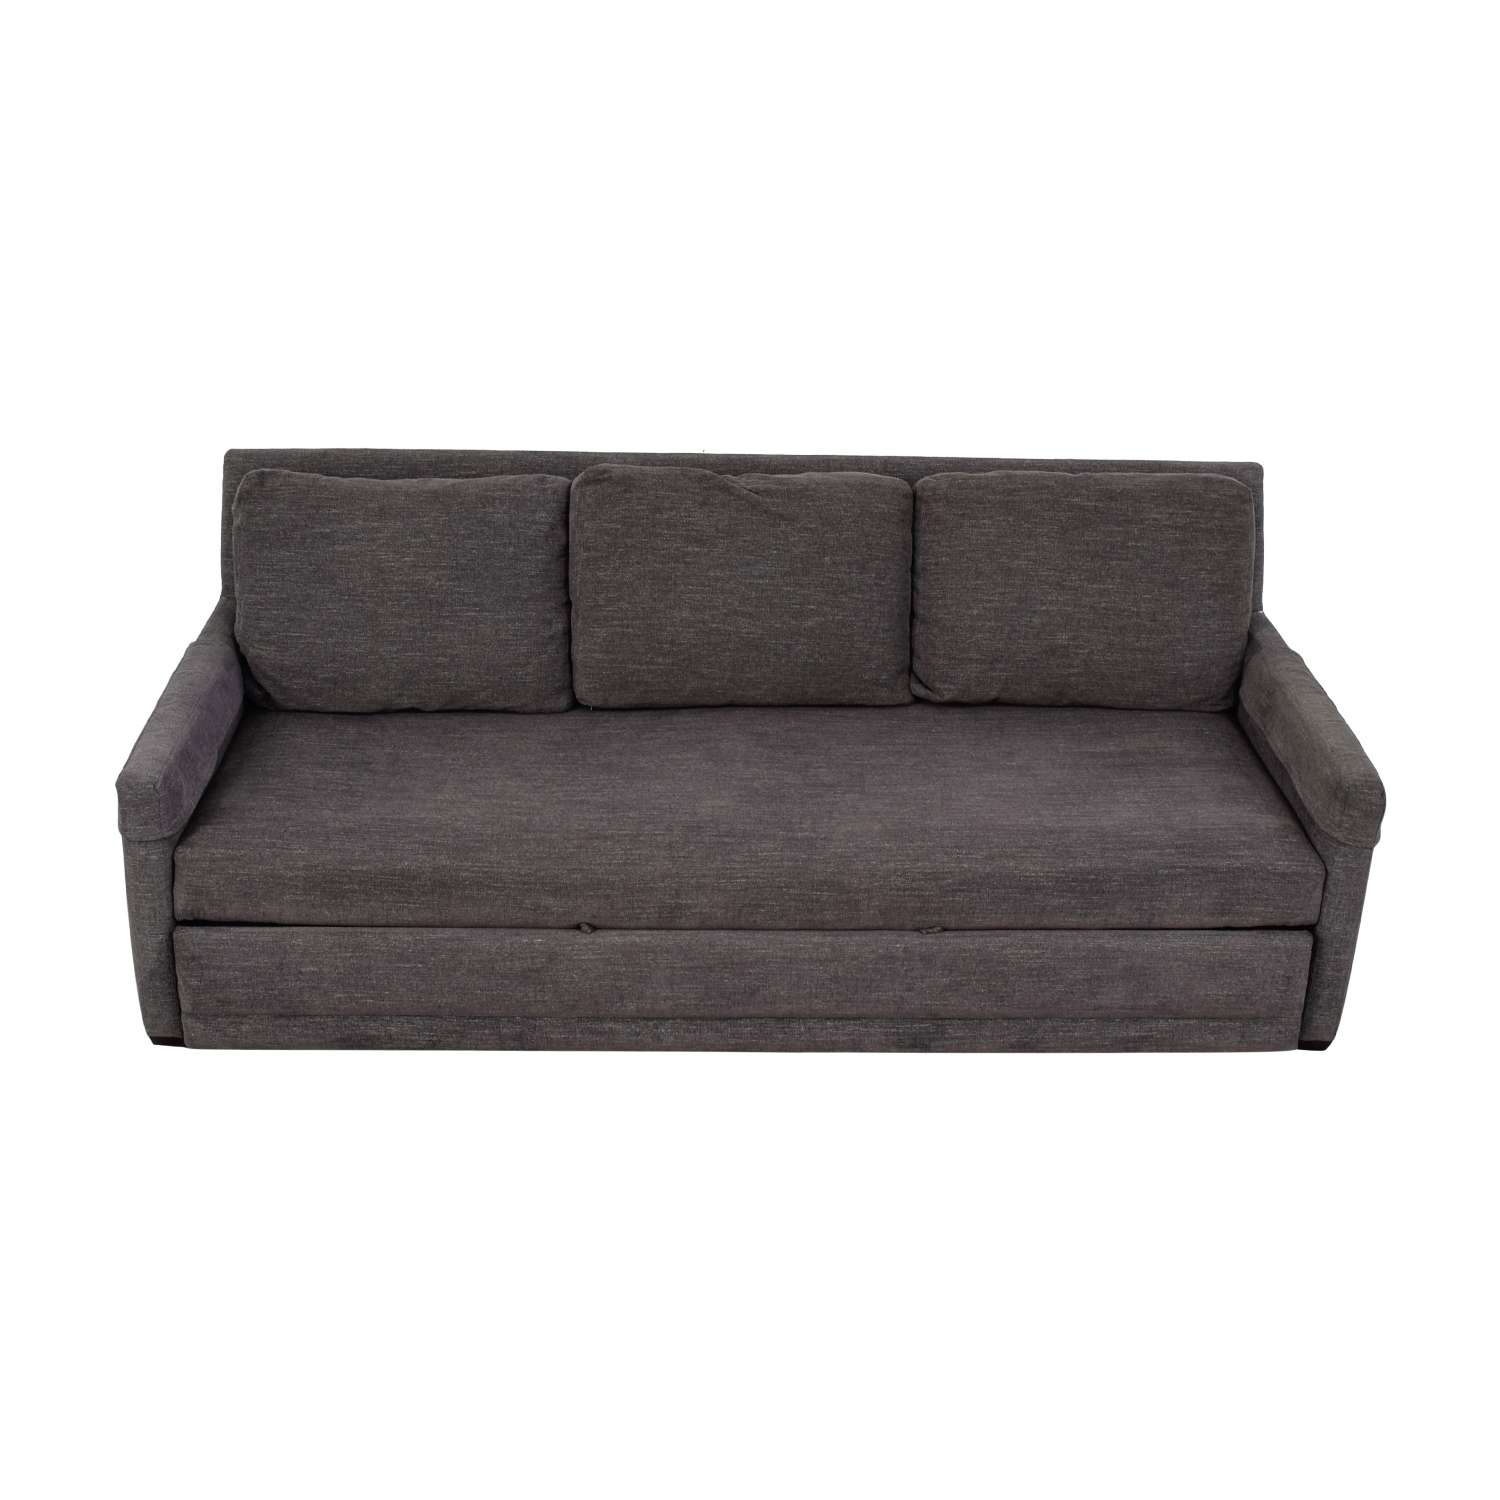 Crate & Barrel Reston Grey Queen Trundle Sleeper Sofabed Crate & Barrel